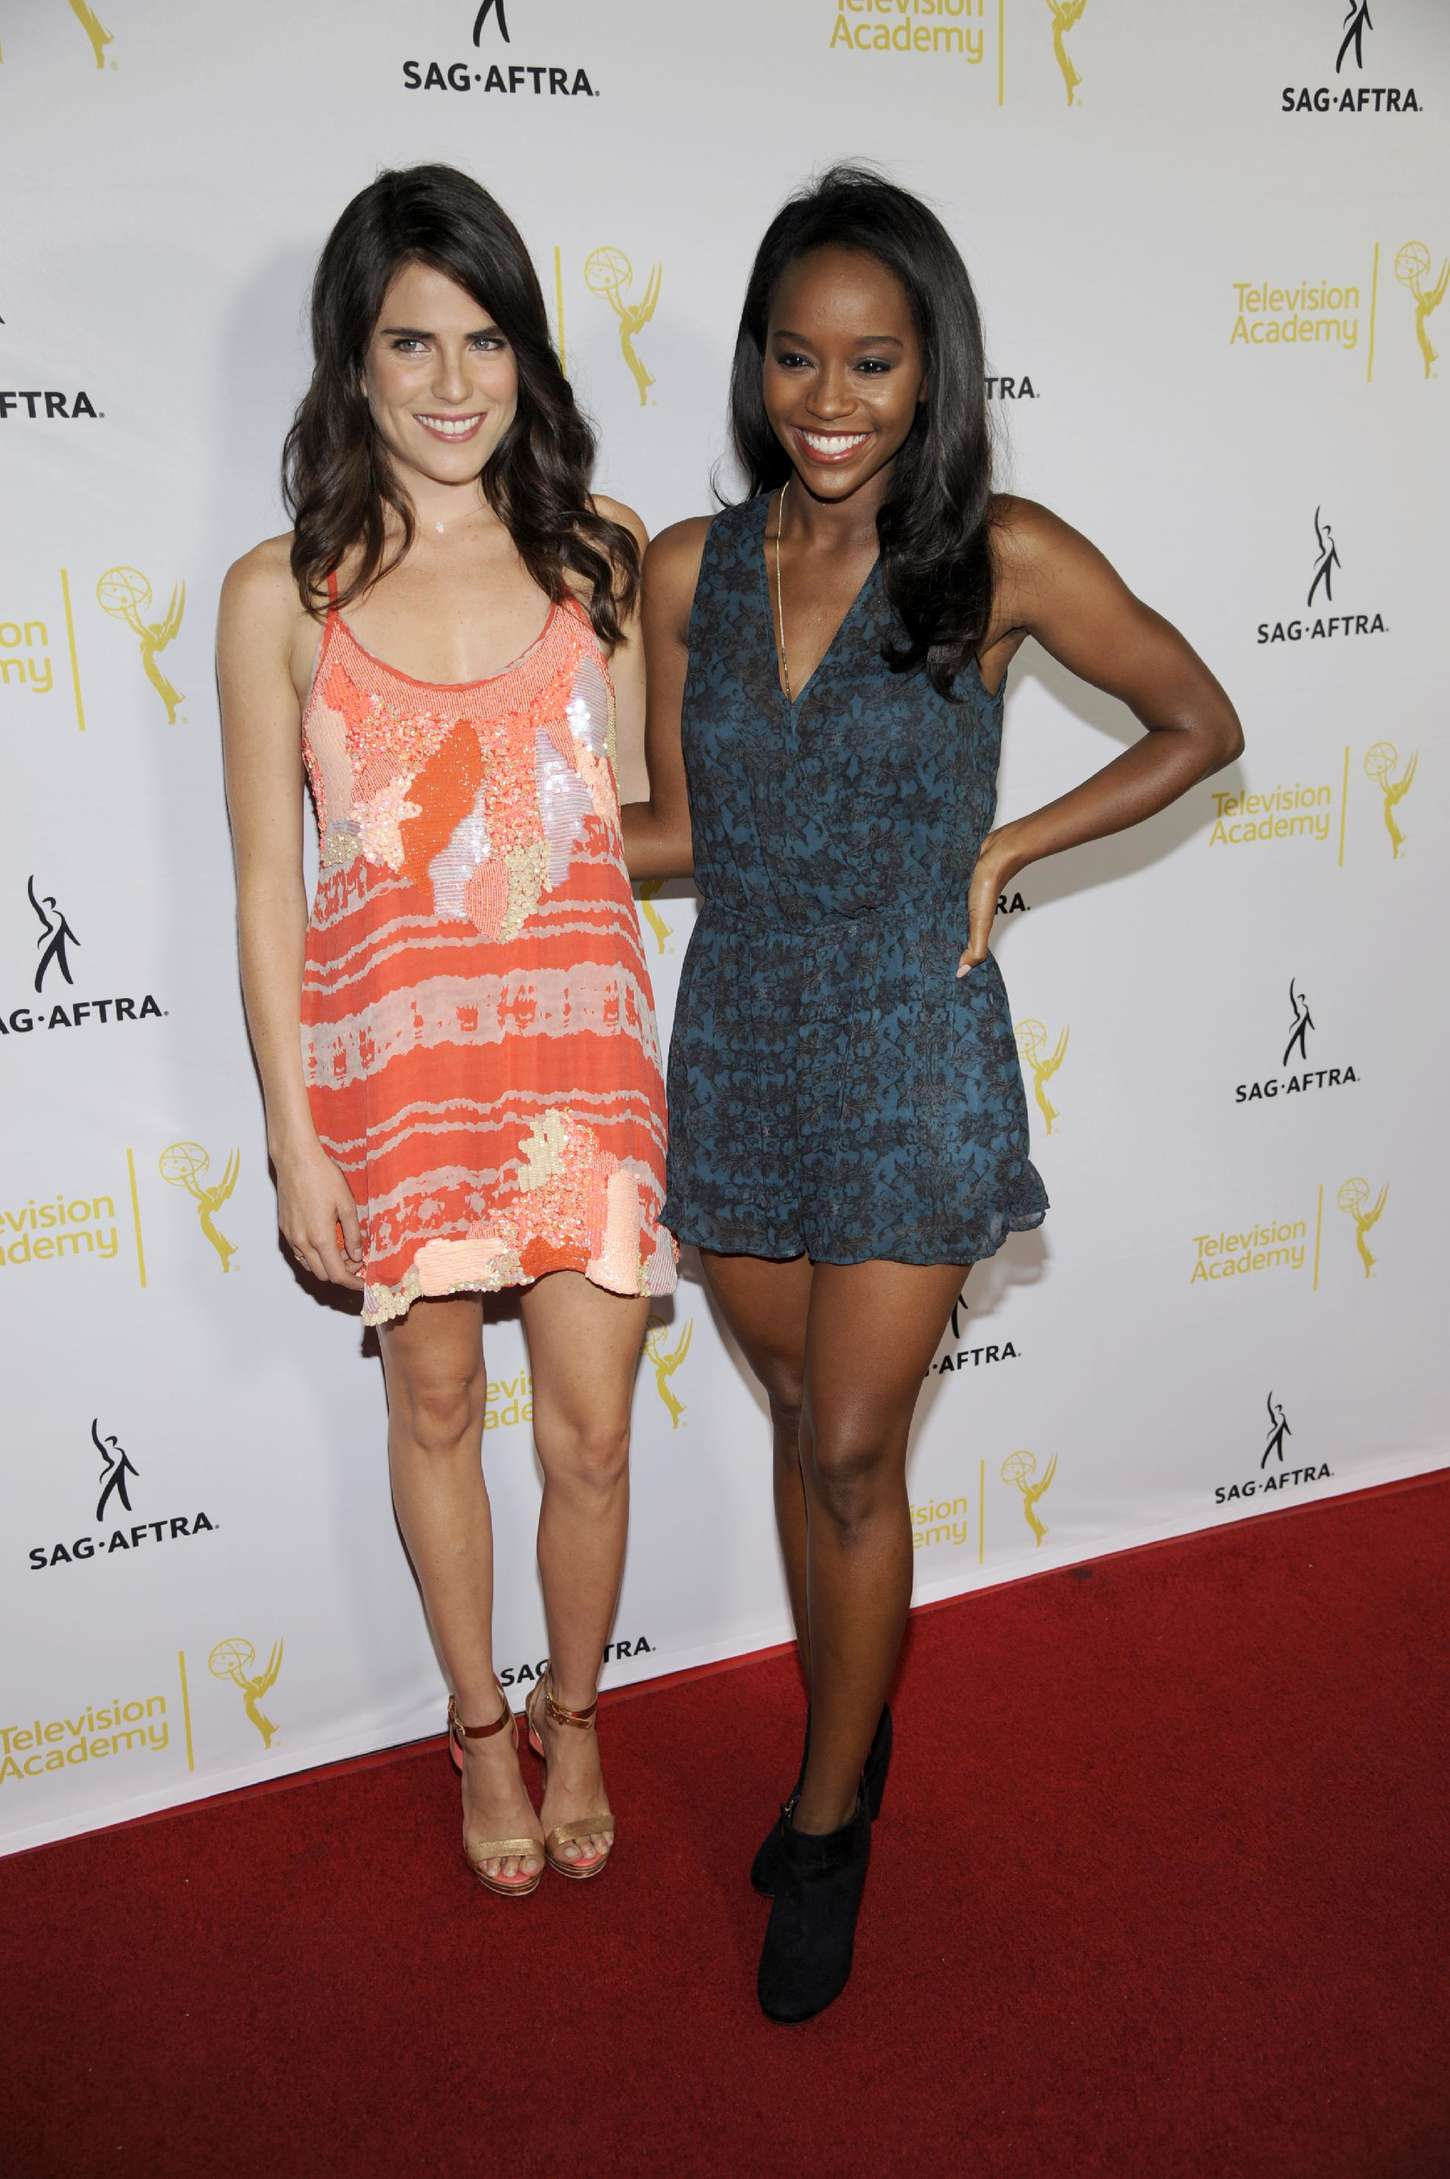 Karla Souza Emmy Awards Dynamic and Diverse Nominee Reception in North Hollywood